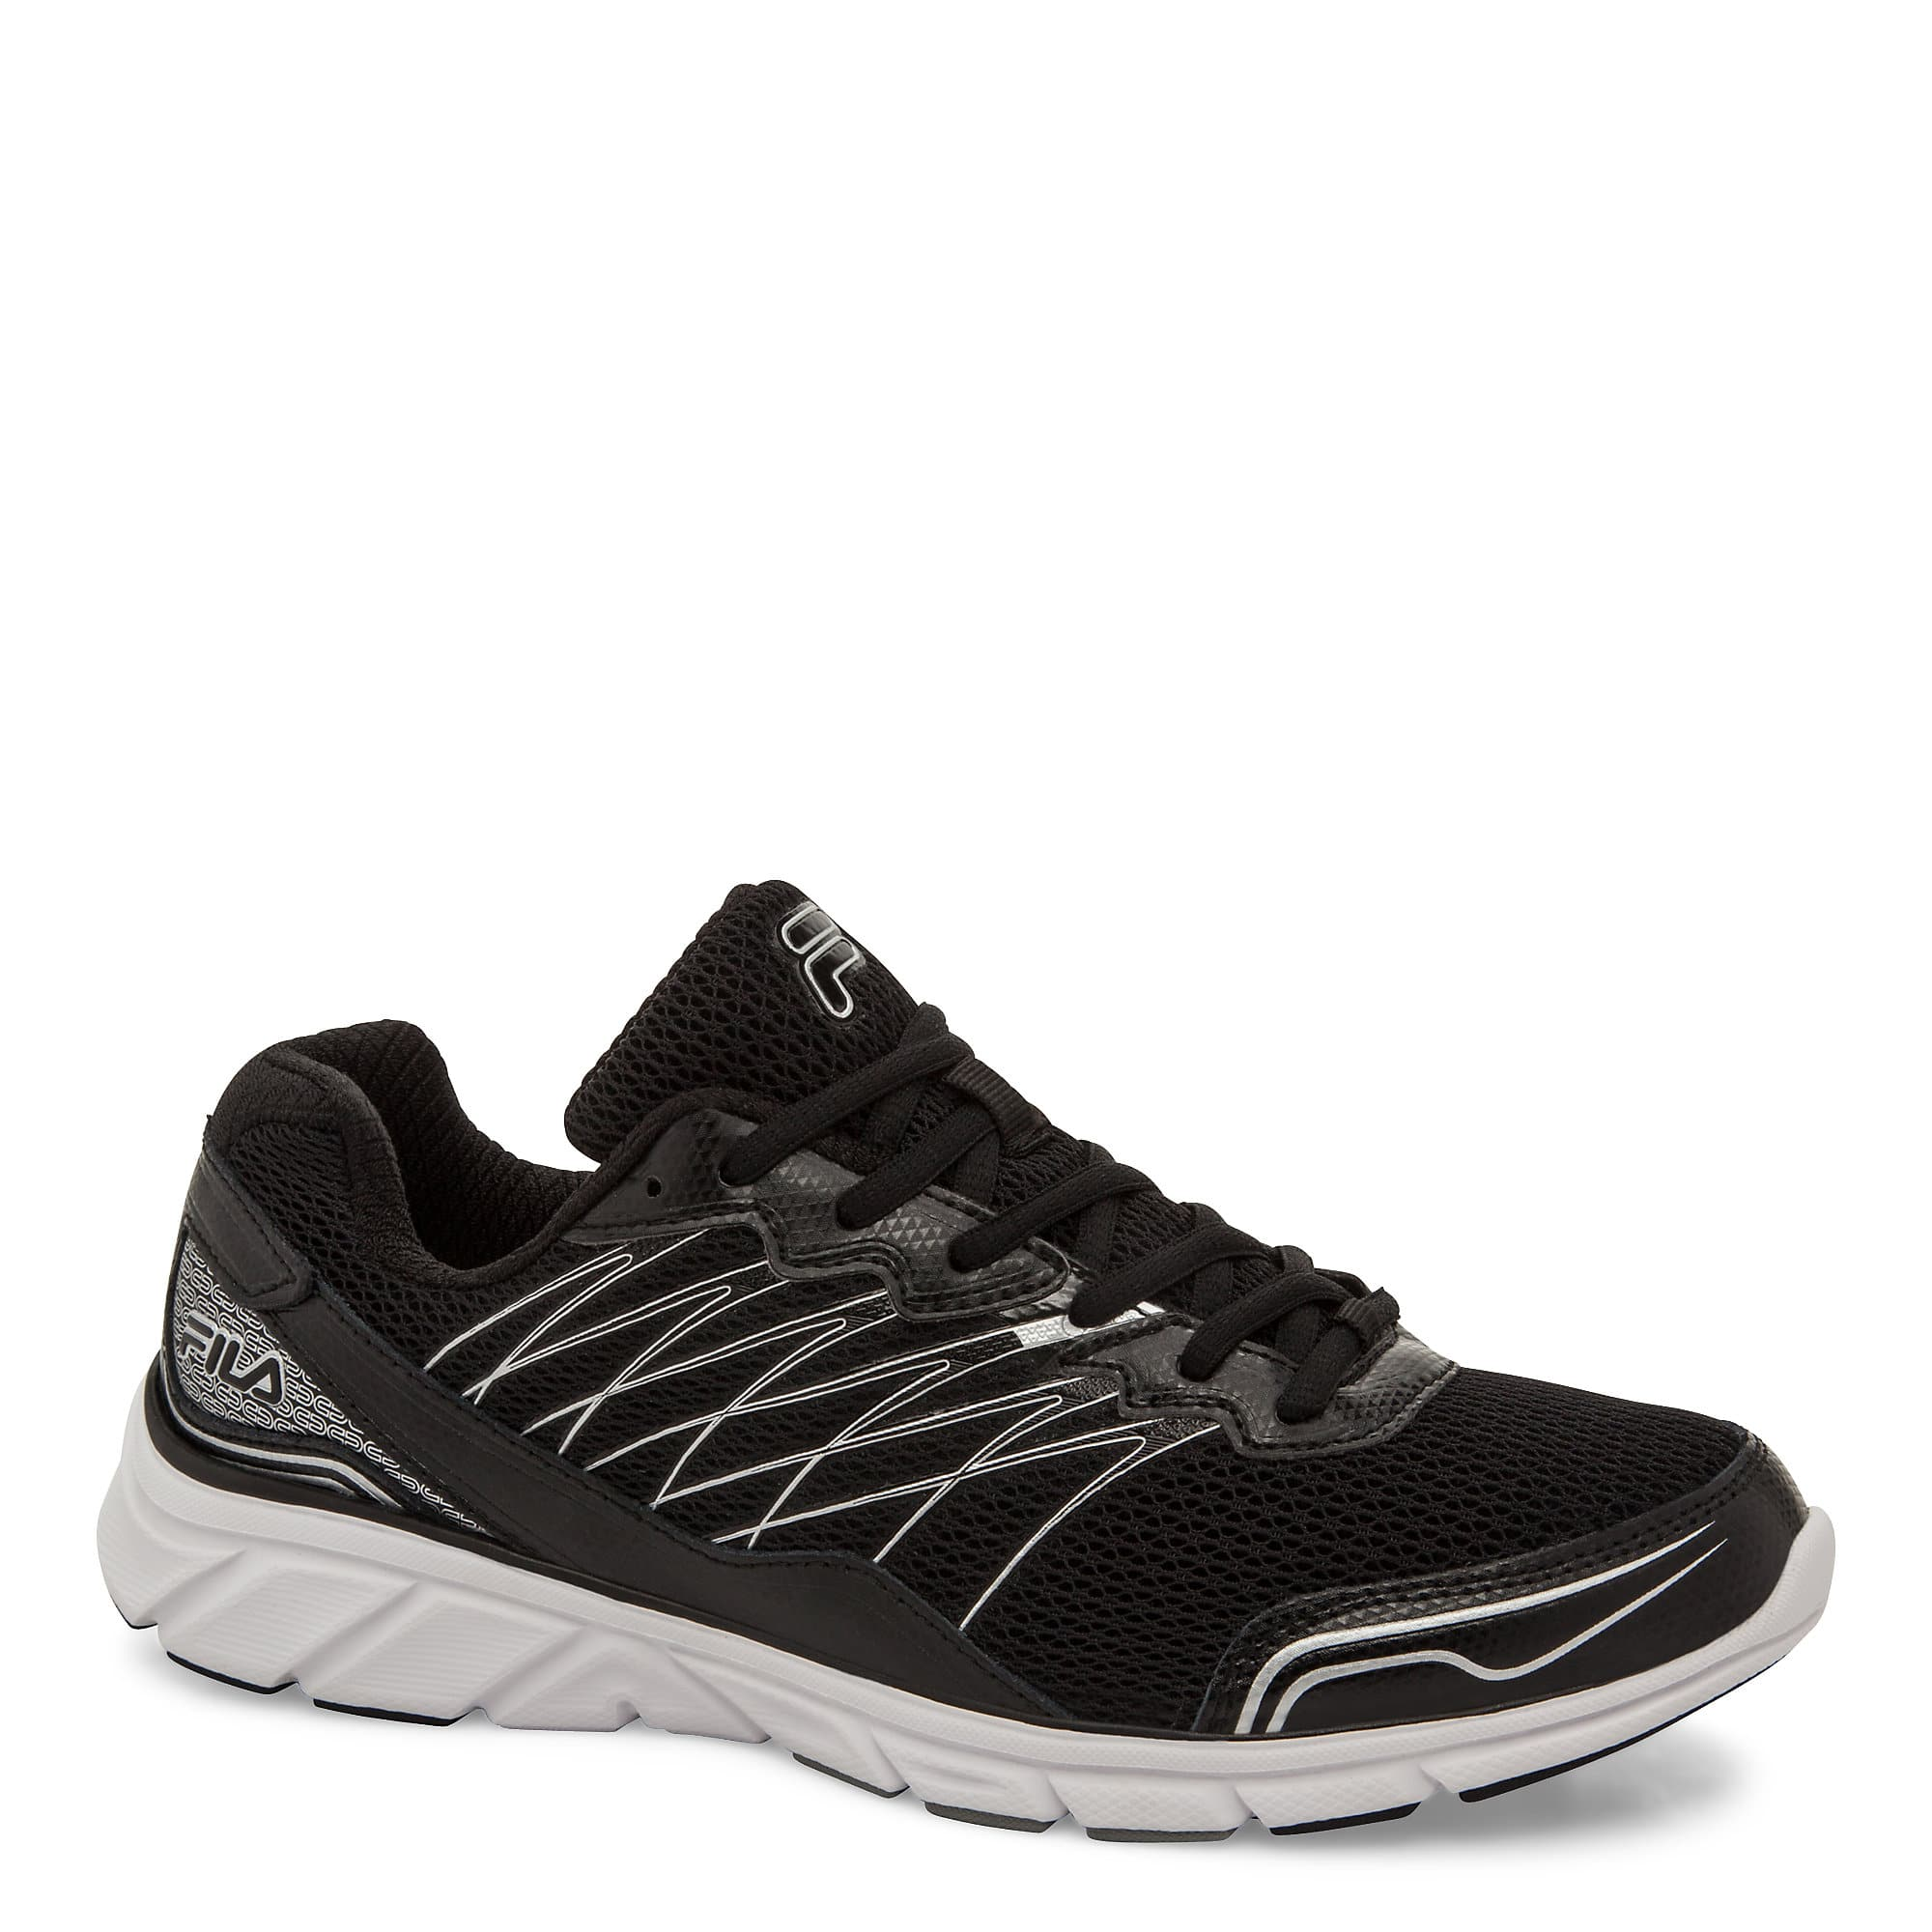 FILA Men's Countdown 2 Running Shoe $25 with free shipping